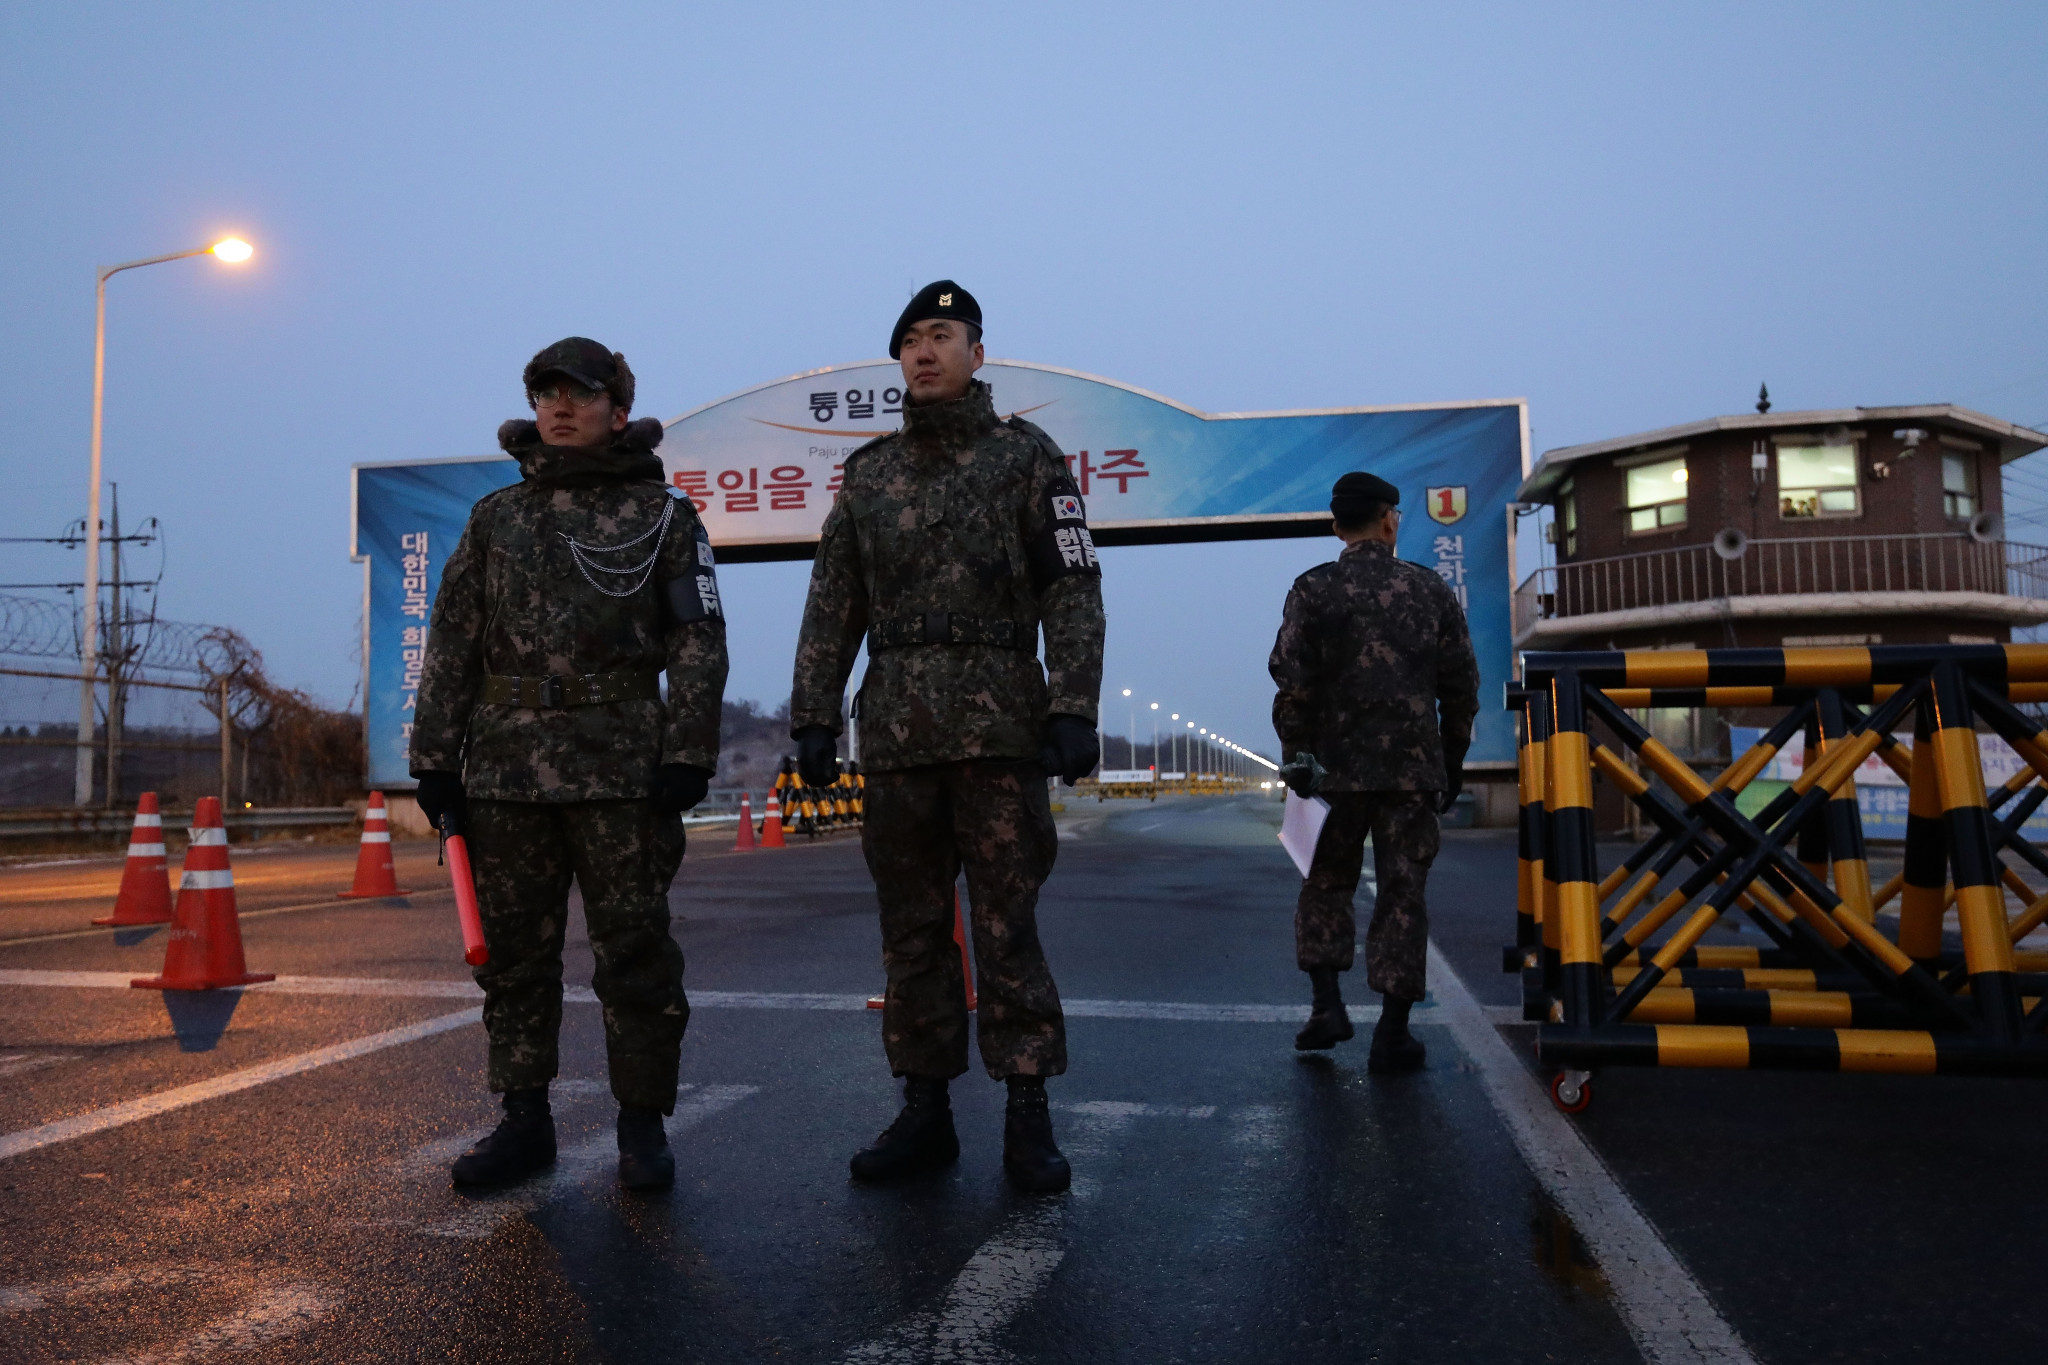 South Korean soldier working at Pyeongchang 2018 dies in freak shower accident